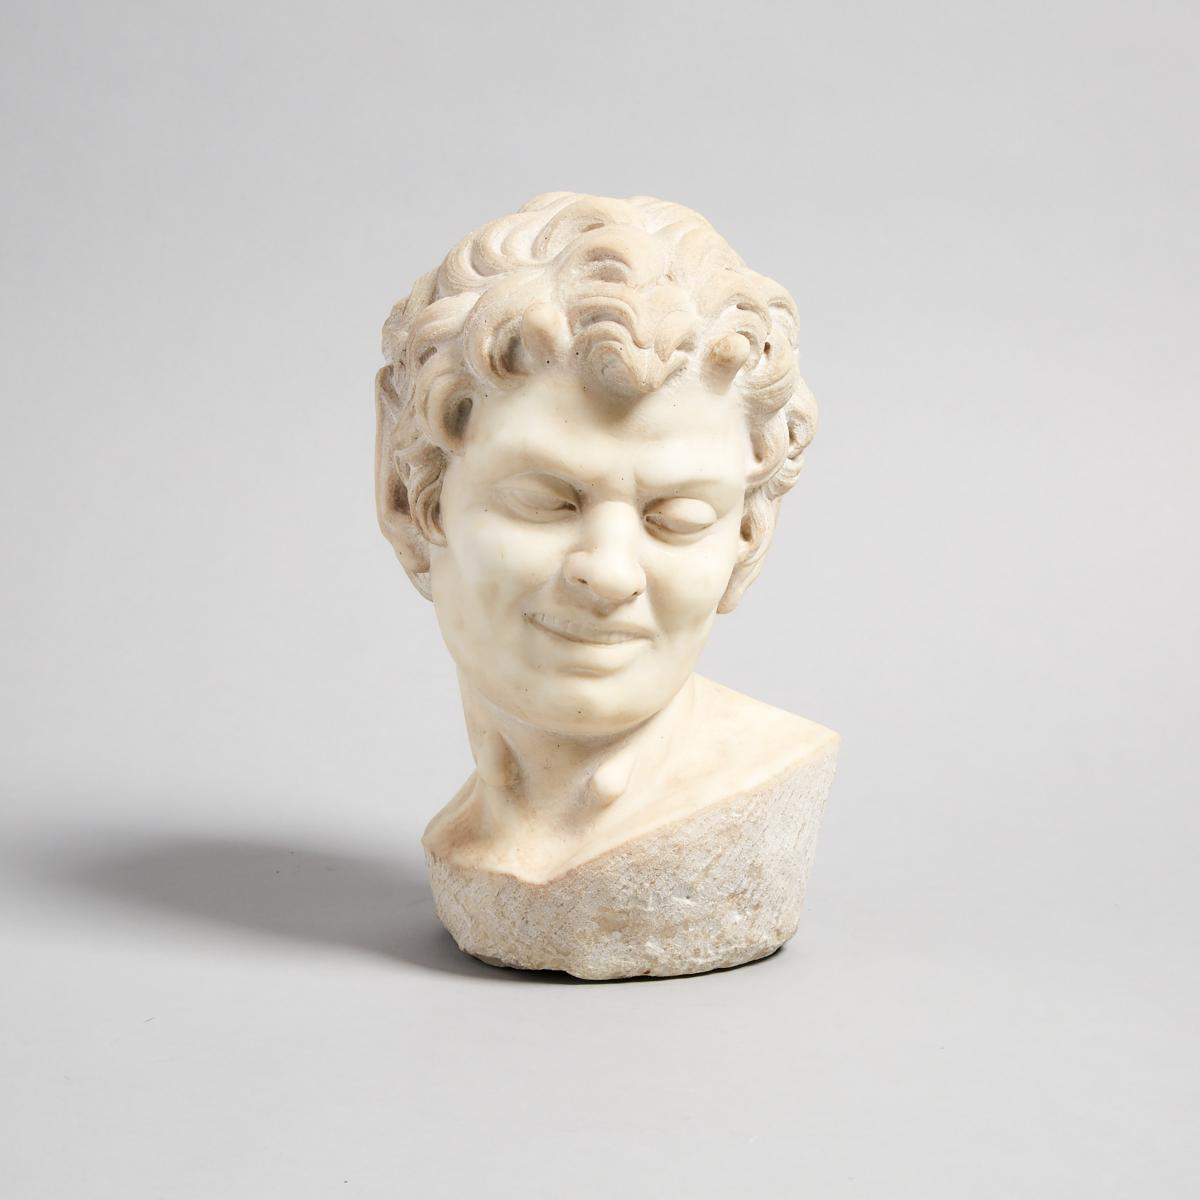 After the Ancient Carved Marble Head of a Satyr, 19th/early 20th century, height 10.25 in — 26 cm